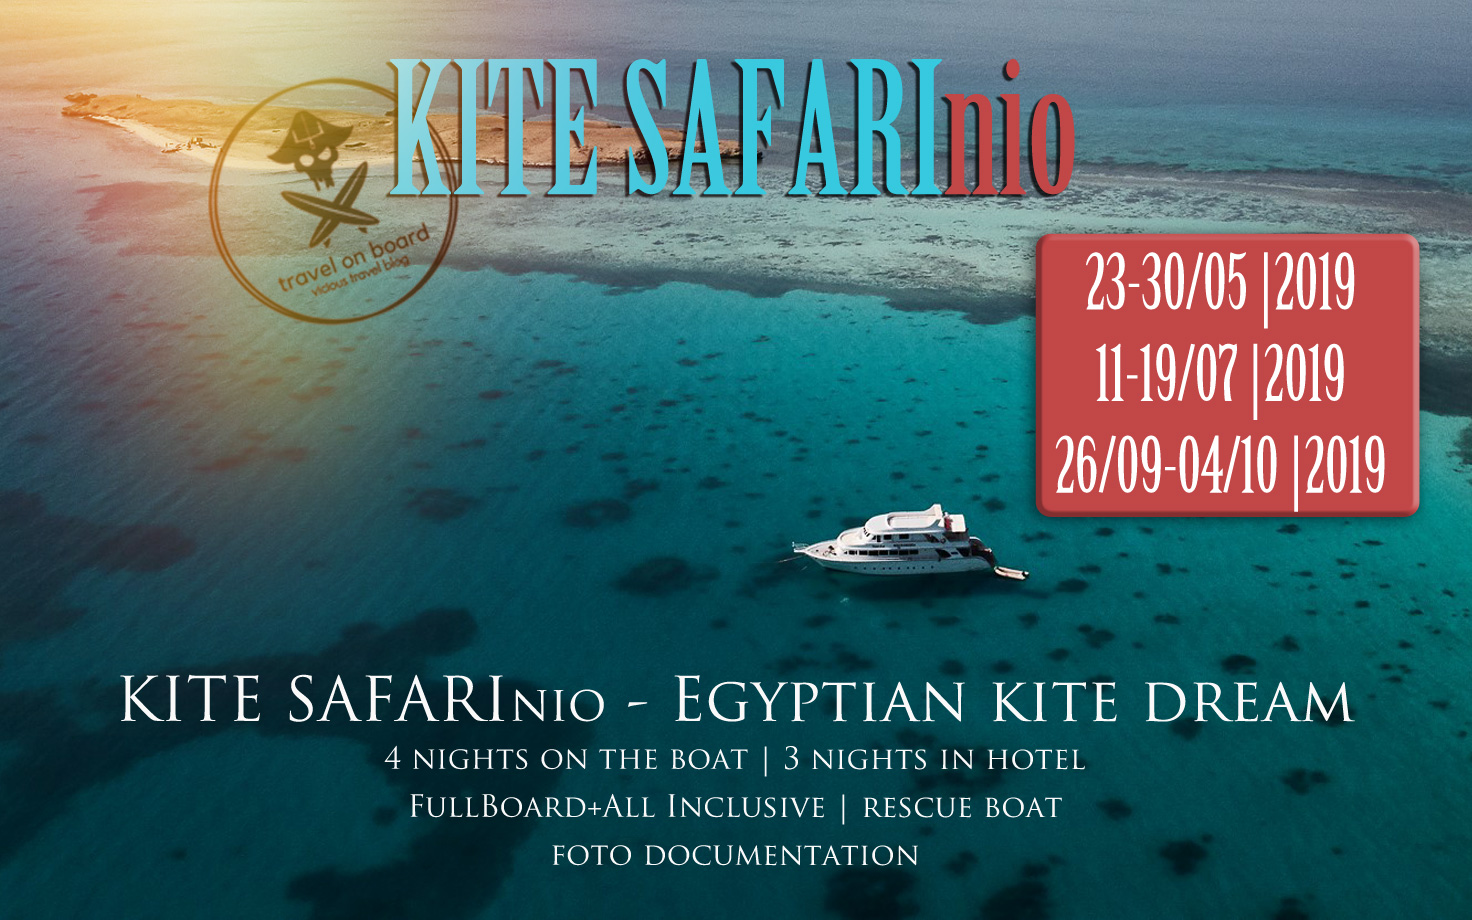 kitesurfing trip to egypt safari on the boat best lagoons